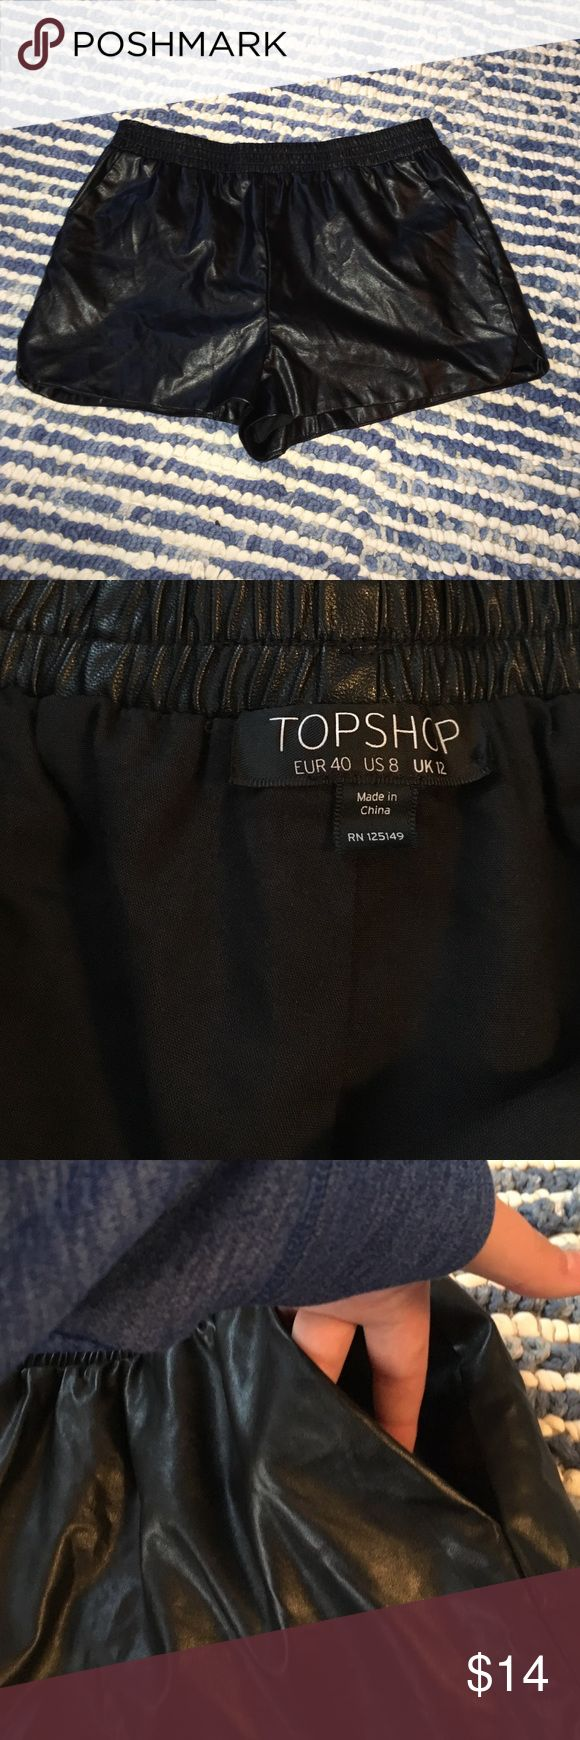 Topshop Shorts Size 8 leather black topshop shorts BUNDLE 2 ITEMS FOR 30 % OFF Topshop Shorts